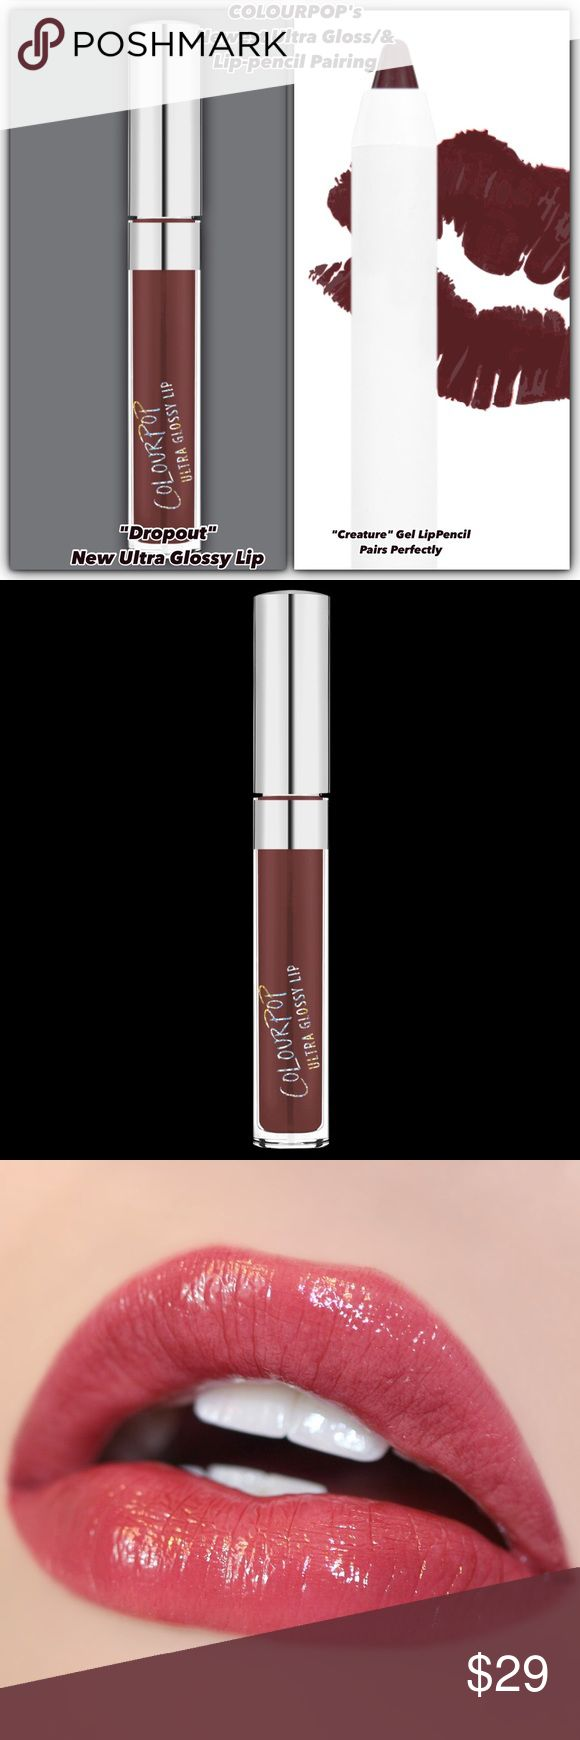 """💋Nip/Colorpop's """"Dropout"""" Ultra Gloss+Creature 💋Nip Colourpop's Ultra Gloss/For an Ultra Glossy Lip! No graduation day 4-U? U'll still rock this chocolate raspberry! Colourpop selected the Creature Lip-pencil pair well with gloss that U can wear alone/w the pencil/+ on top of ur Fav Lippie Stix? The doe foot applicator will give easy+precise application. But try NEW THINGS! Dare 2-B different in ur lipwear! Feel ur freedom & mix & match/create different looks! WOW a new look EVERY DAY! I'm…"""